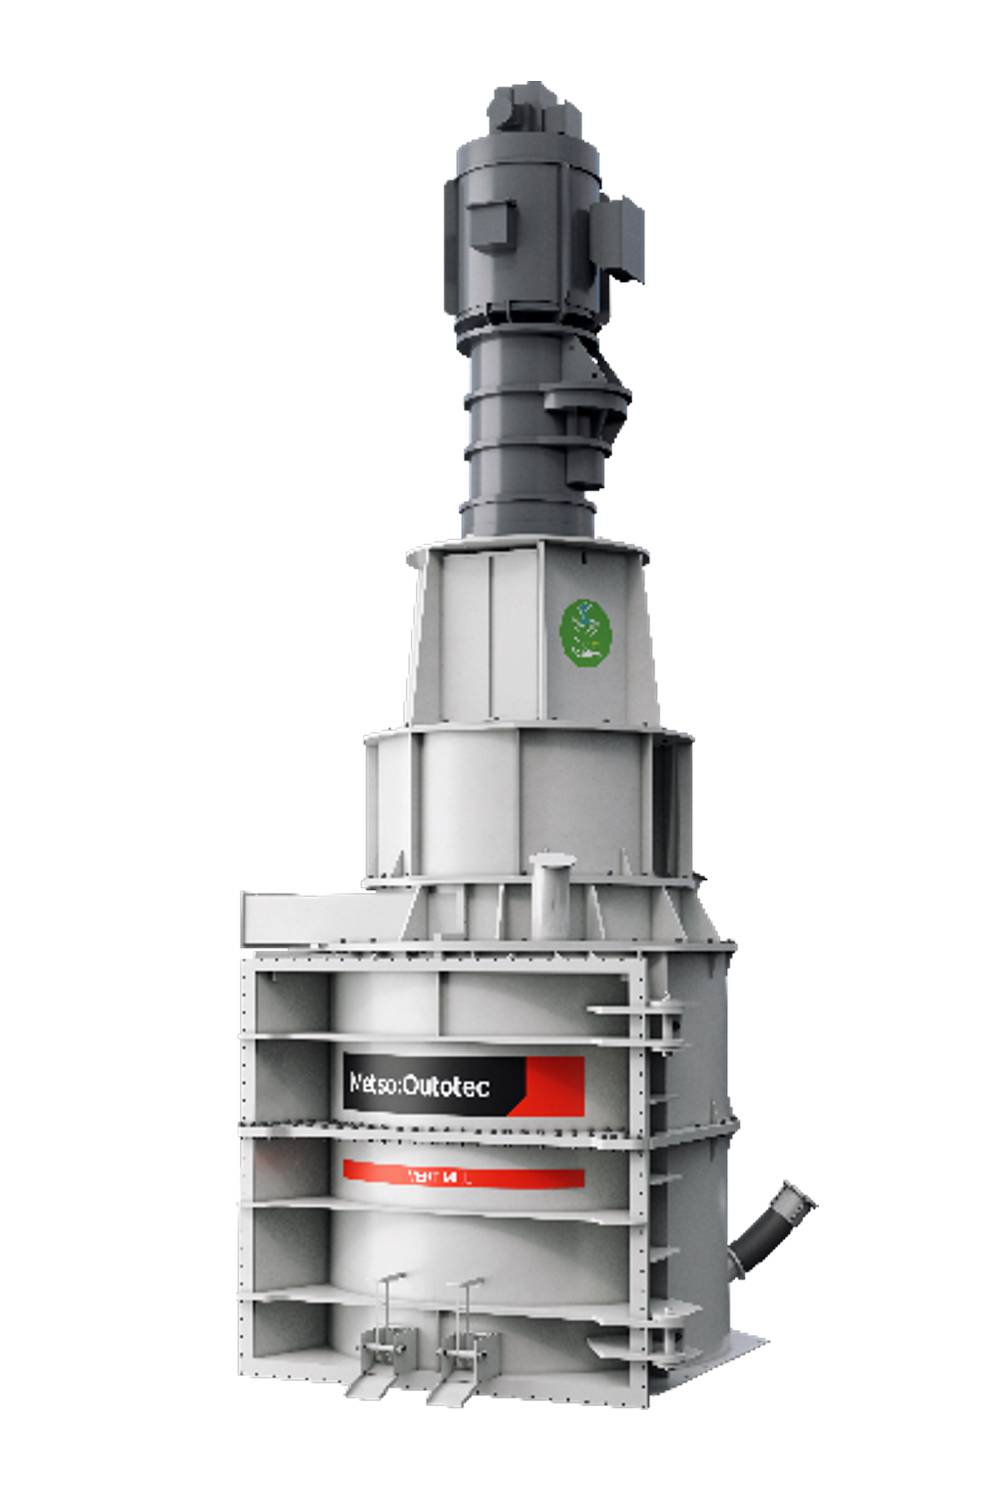 Metso Outotec introduces stirred mills for superior comminution